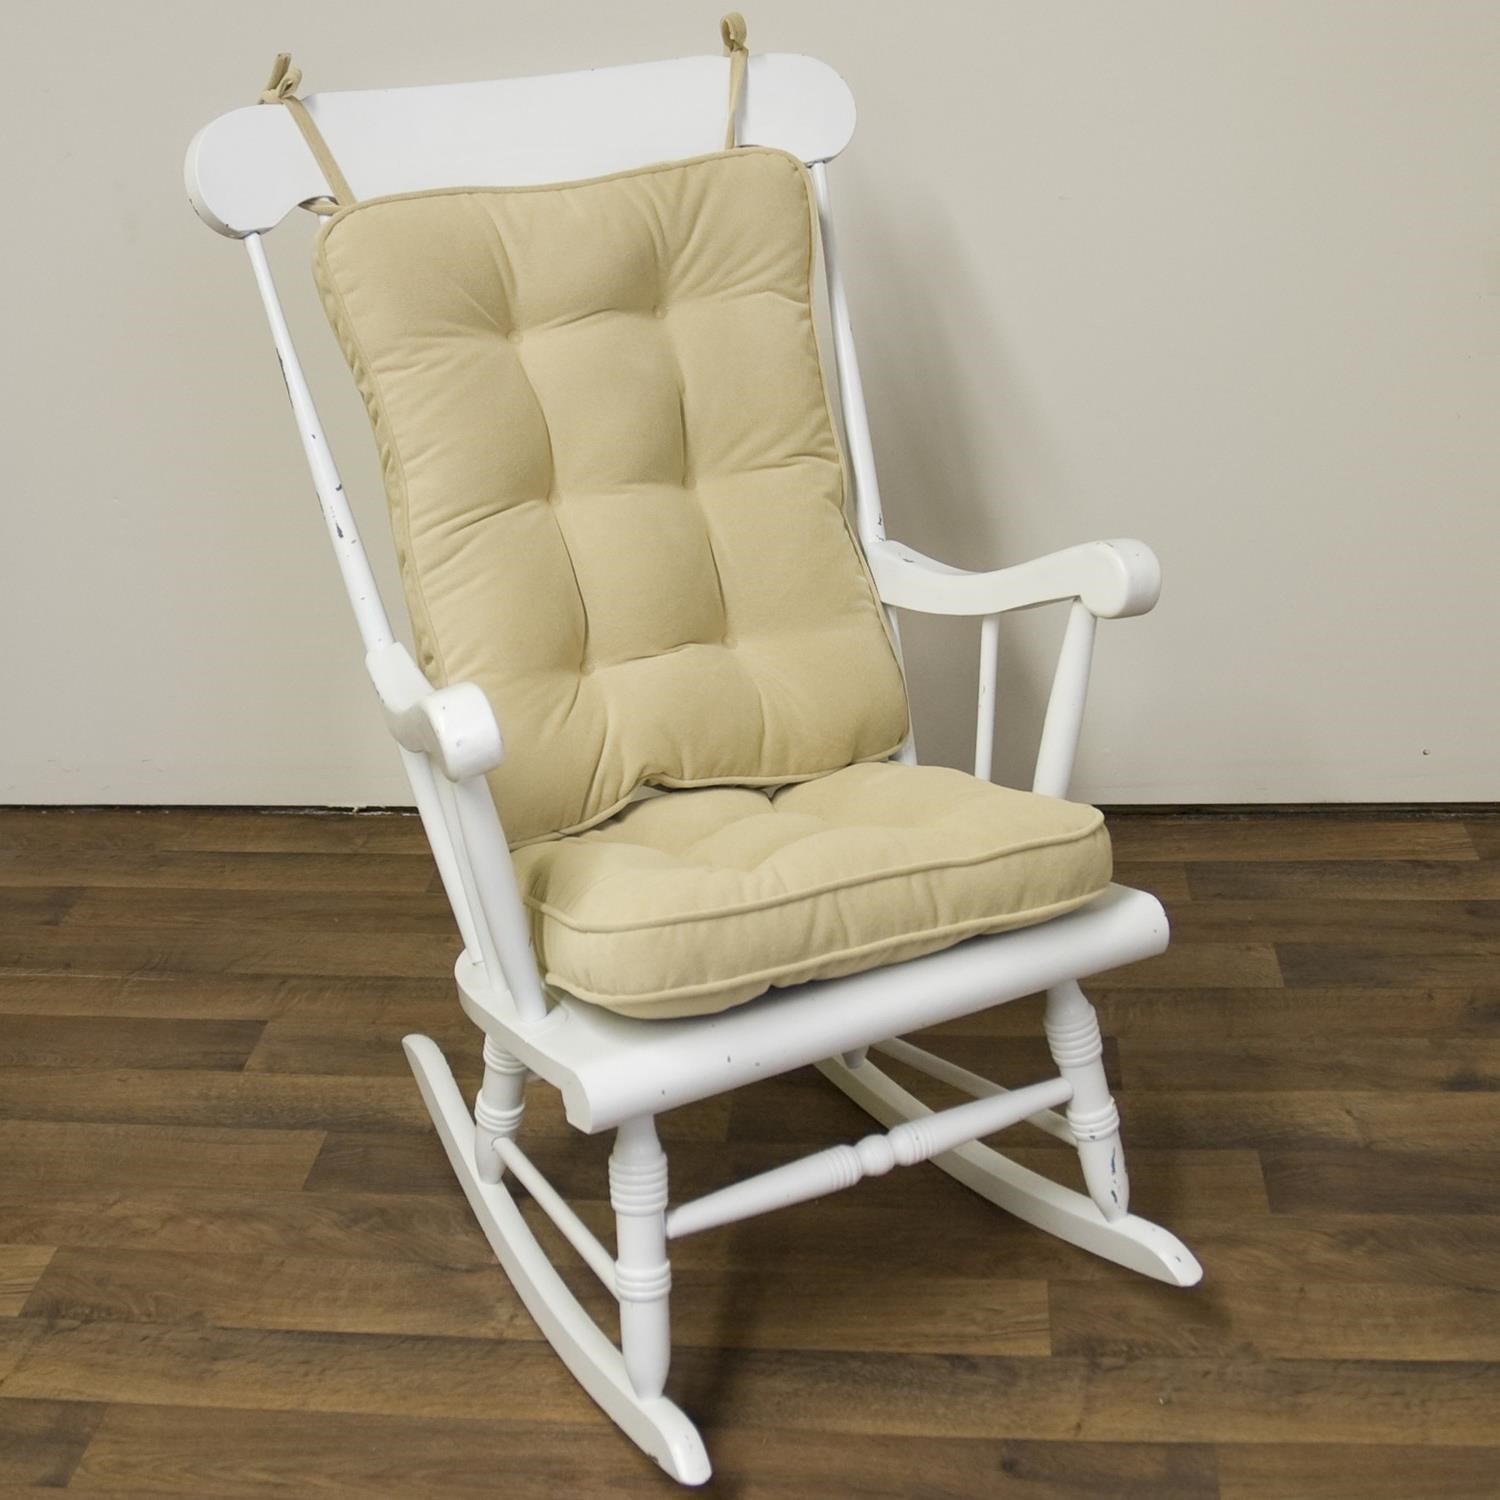 Upholstered Rocking Chairs Style